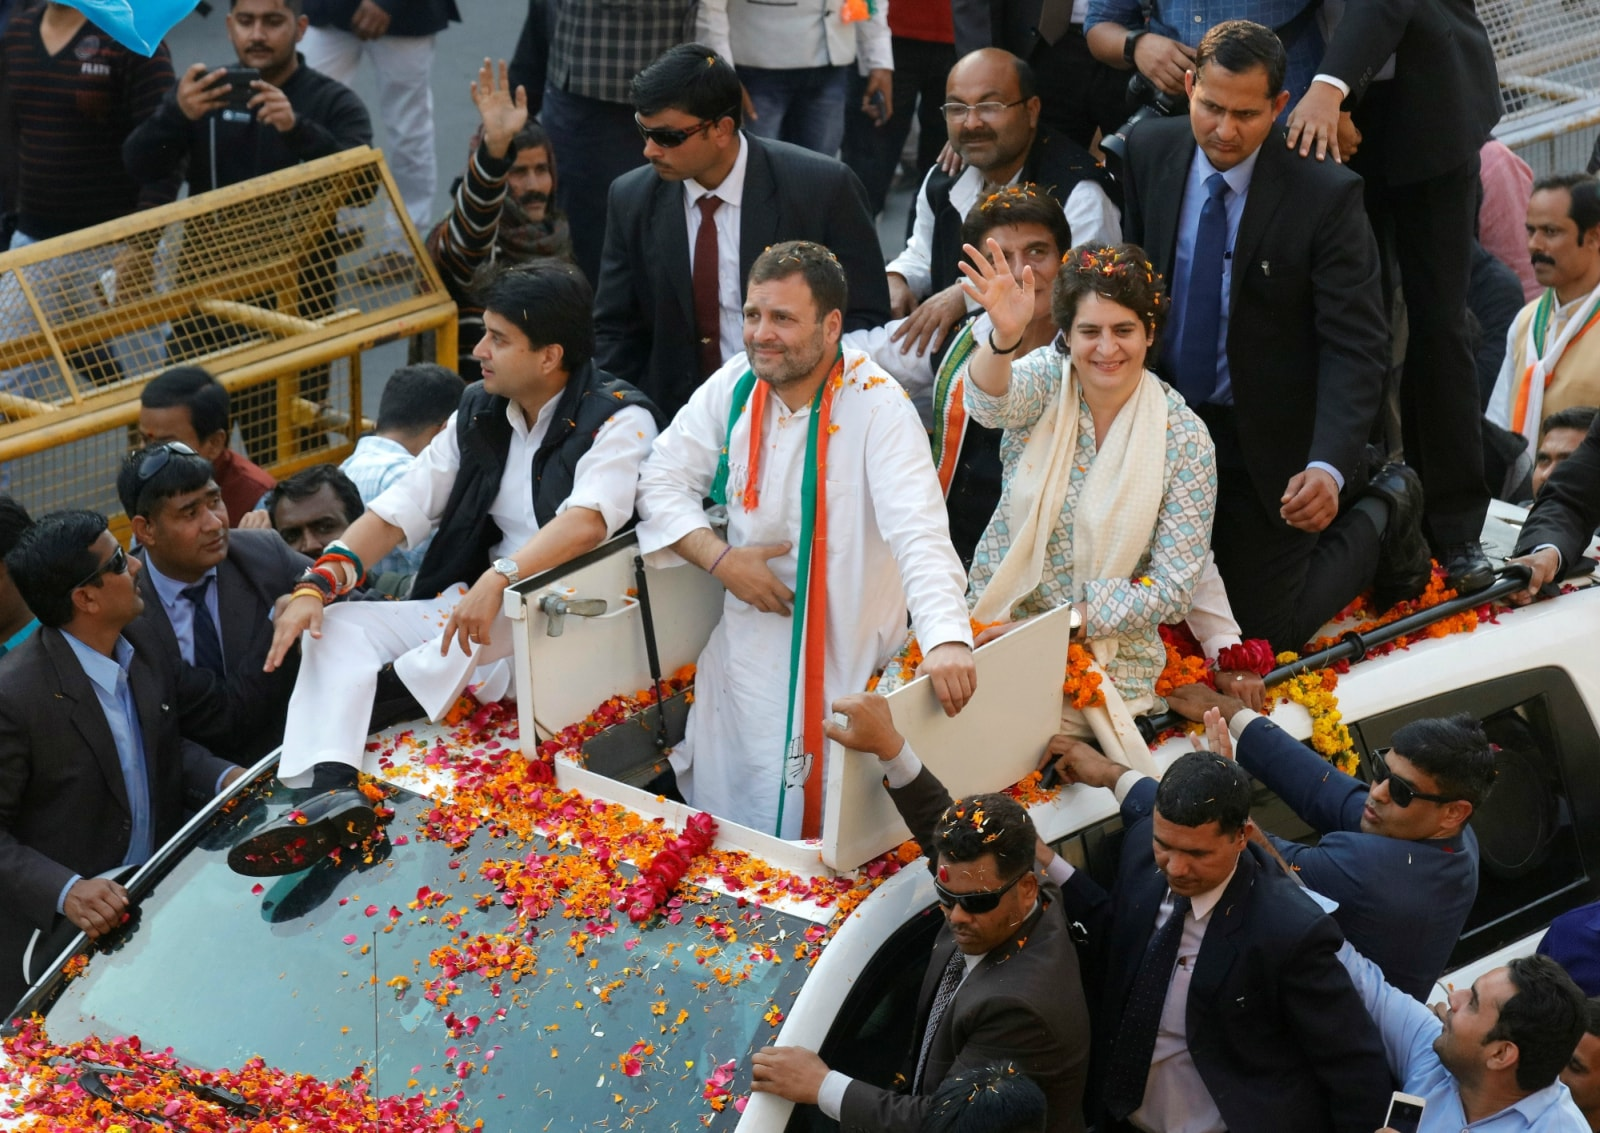 9. General Elections 2019: Congress party will reserve a third of government jobs for women if it comes into power, its chief Rahul Gandhi said on Wednesday, in a sign women's rights are rising up the political agenda for next month's election. Over the last week, two powerful parties from eastern India said they would field women in a third of parliamentary races, putting pressure on Prime Minister Narendra Modi's ruling Bharatiya Janata Party (BJP) and other big parties to follow suit. (Image: Reuters)